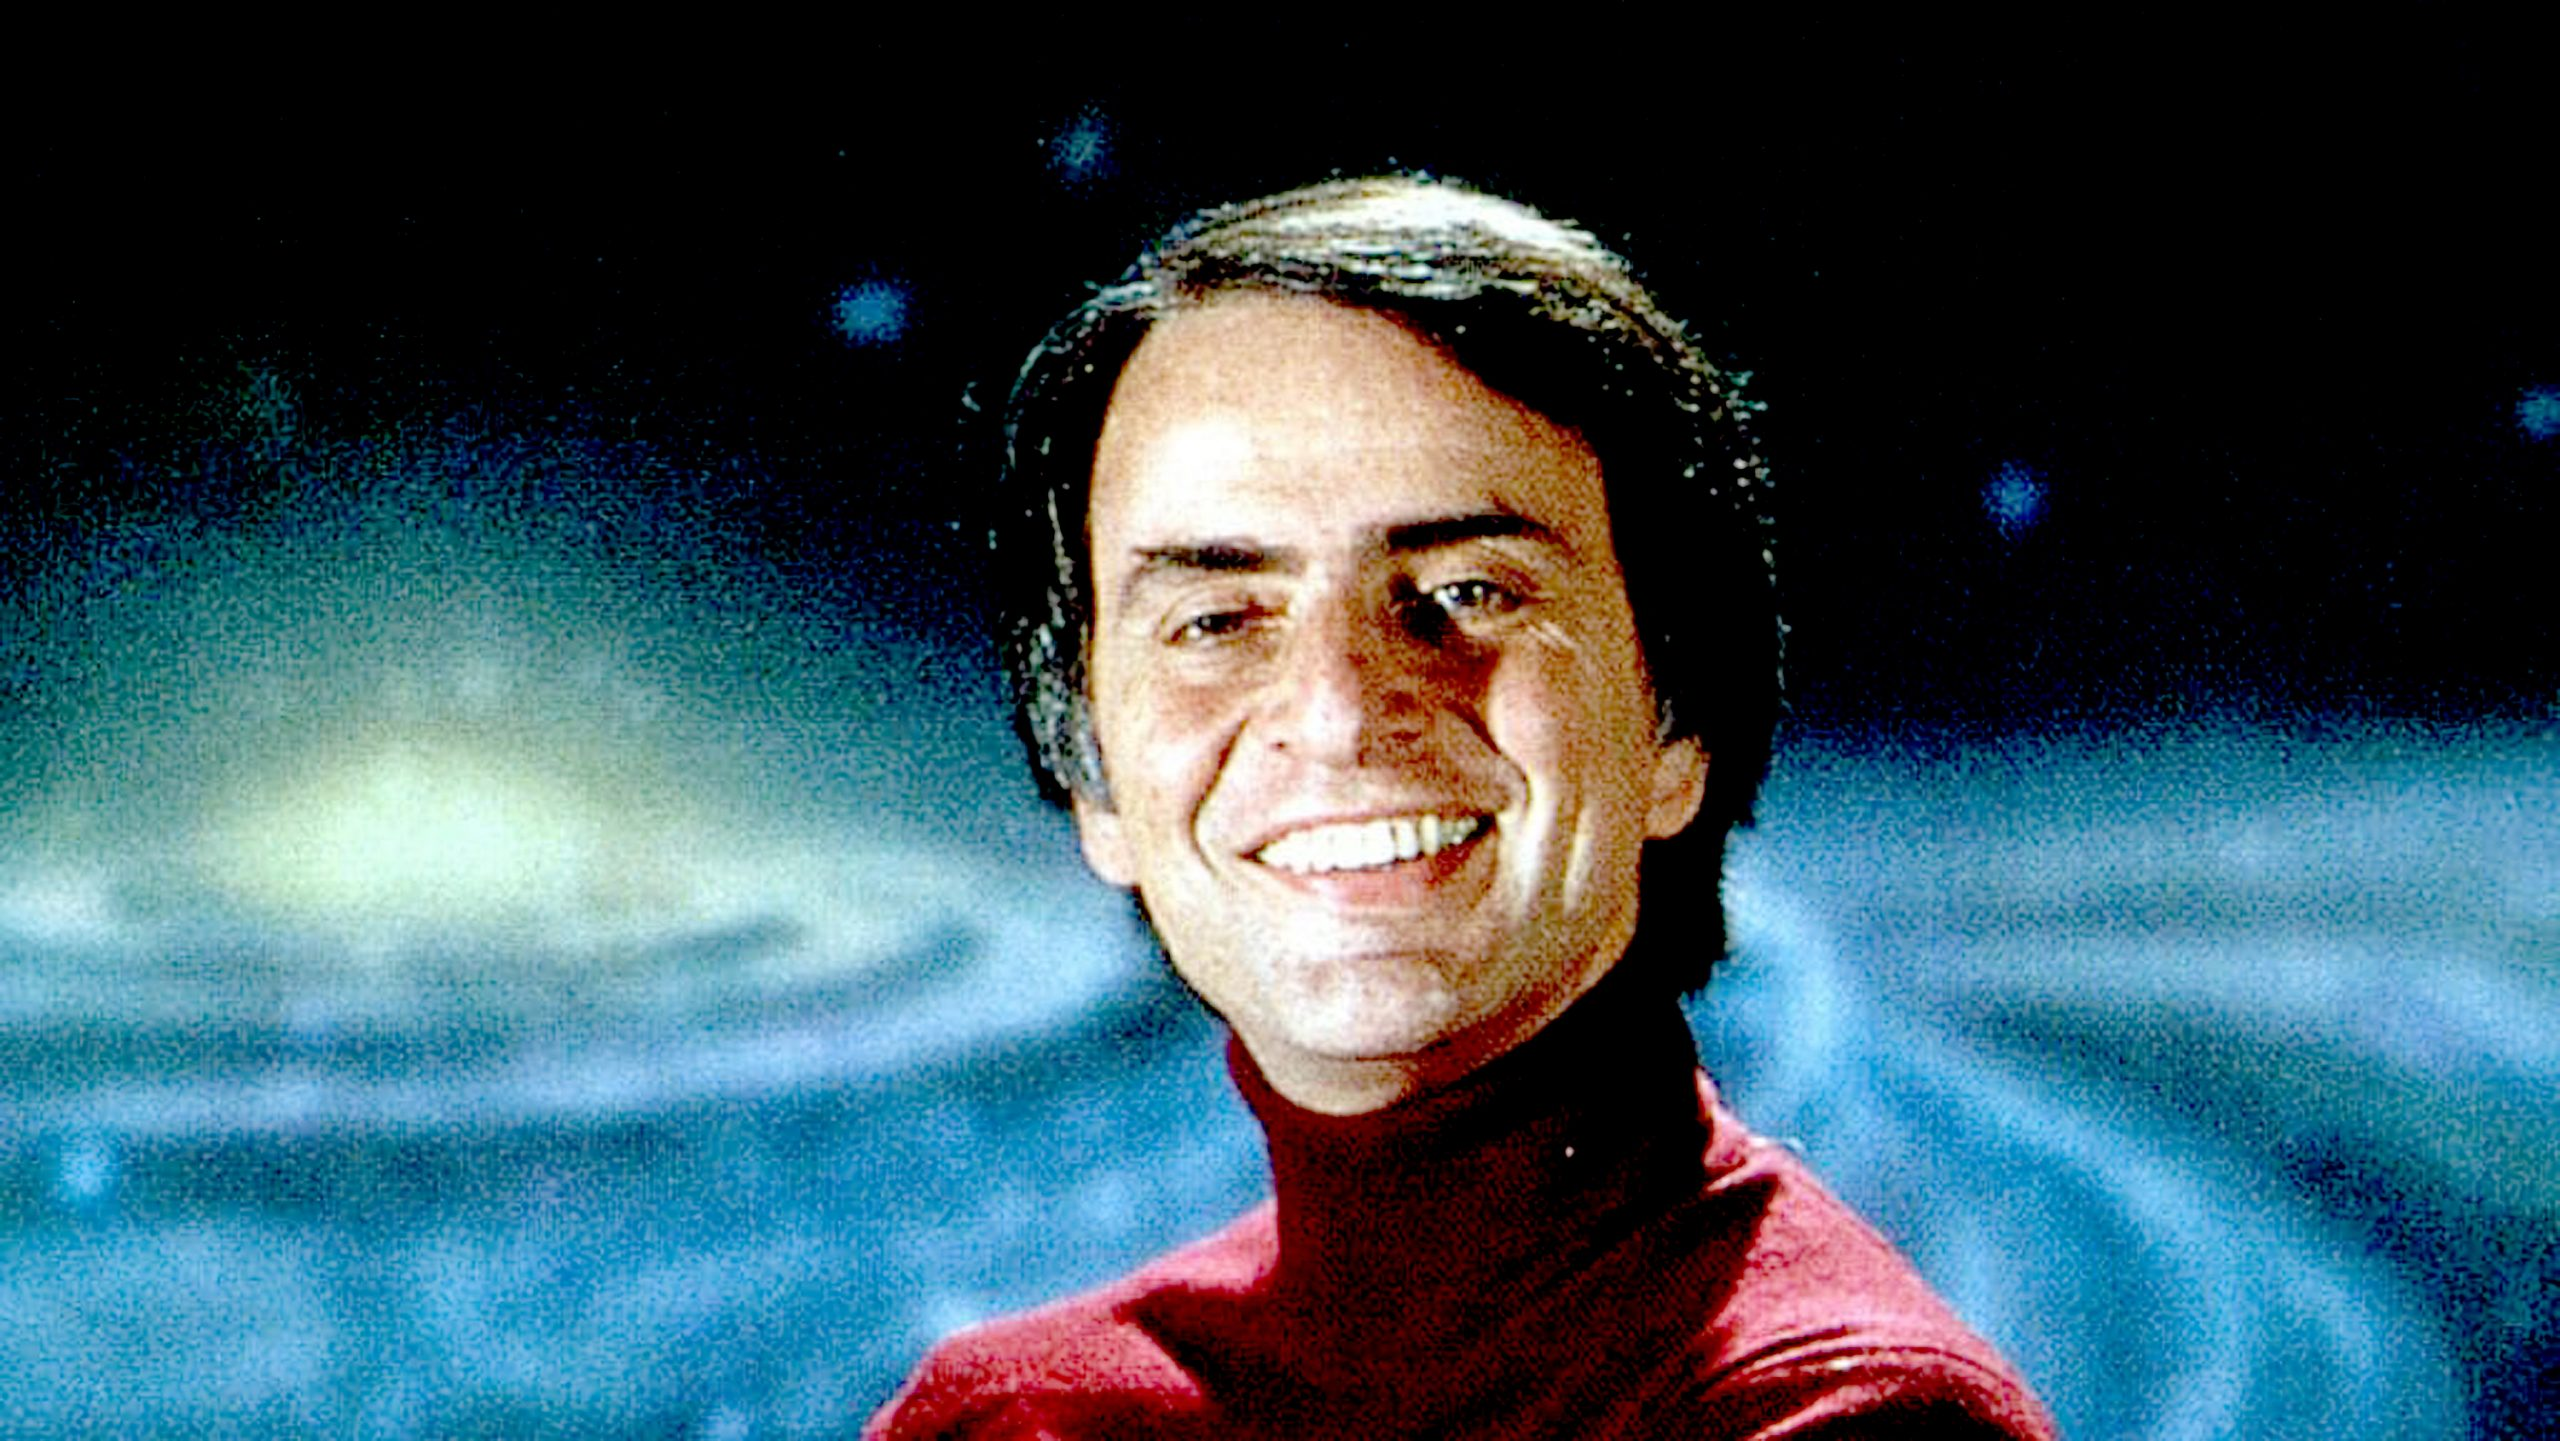 December 20, 1996 – Carl Sagan Joins The Cosmos (1934-1996) – Hostage Drama In Peru – Clinton Announces 2nd Term Cabinet.